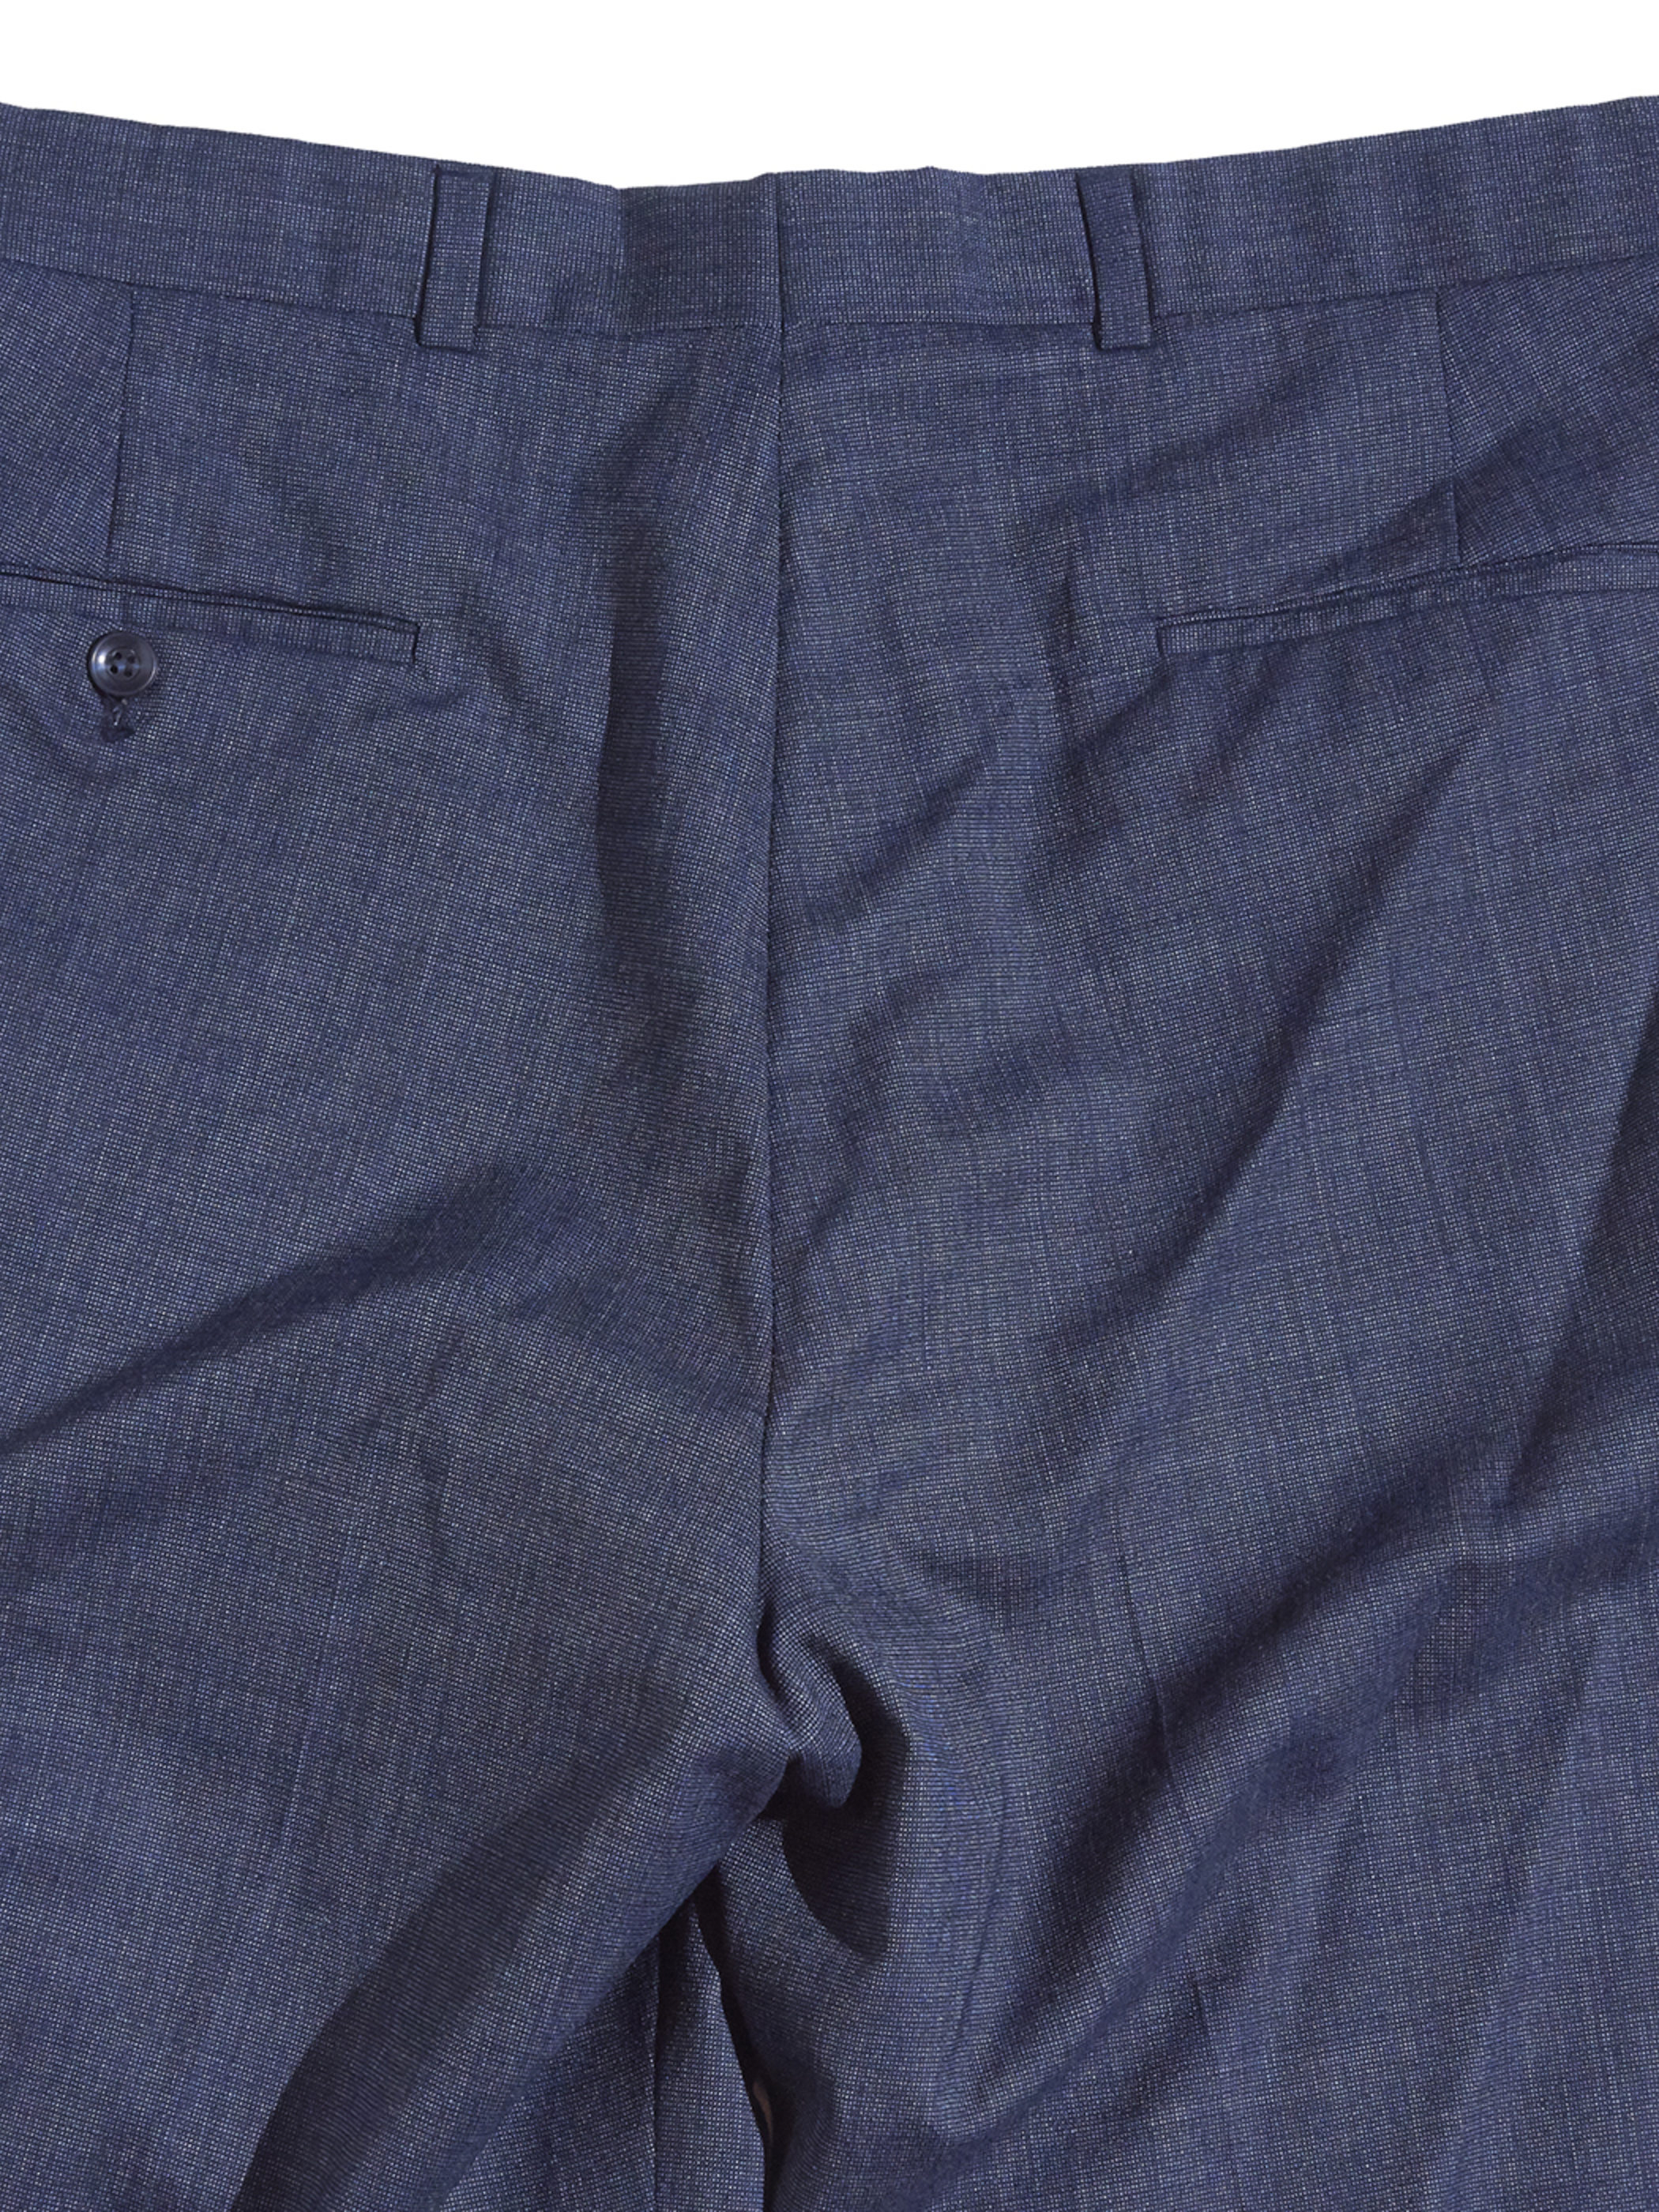 "1980s ""BROOKS BROTHERS"" 2piece No.1 sack suit -CHACOAL-"